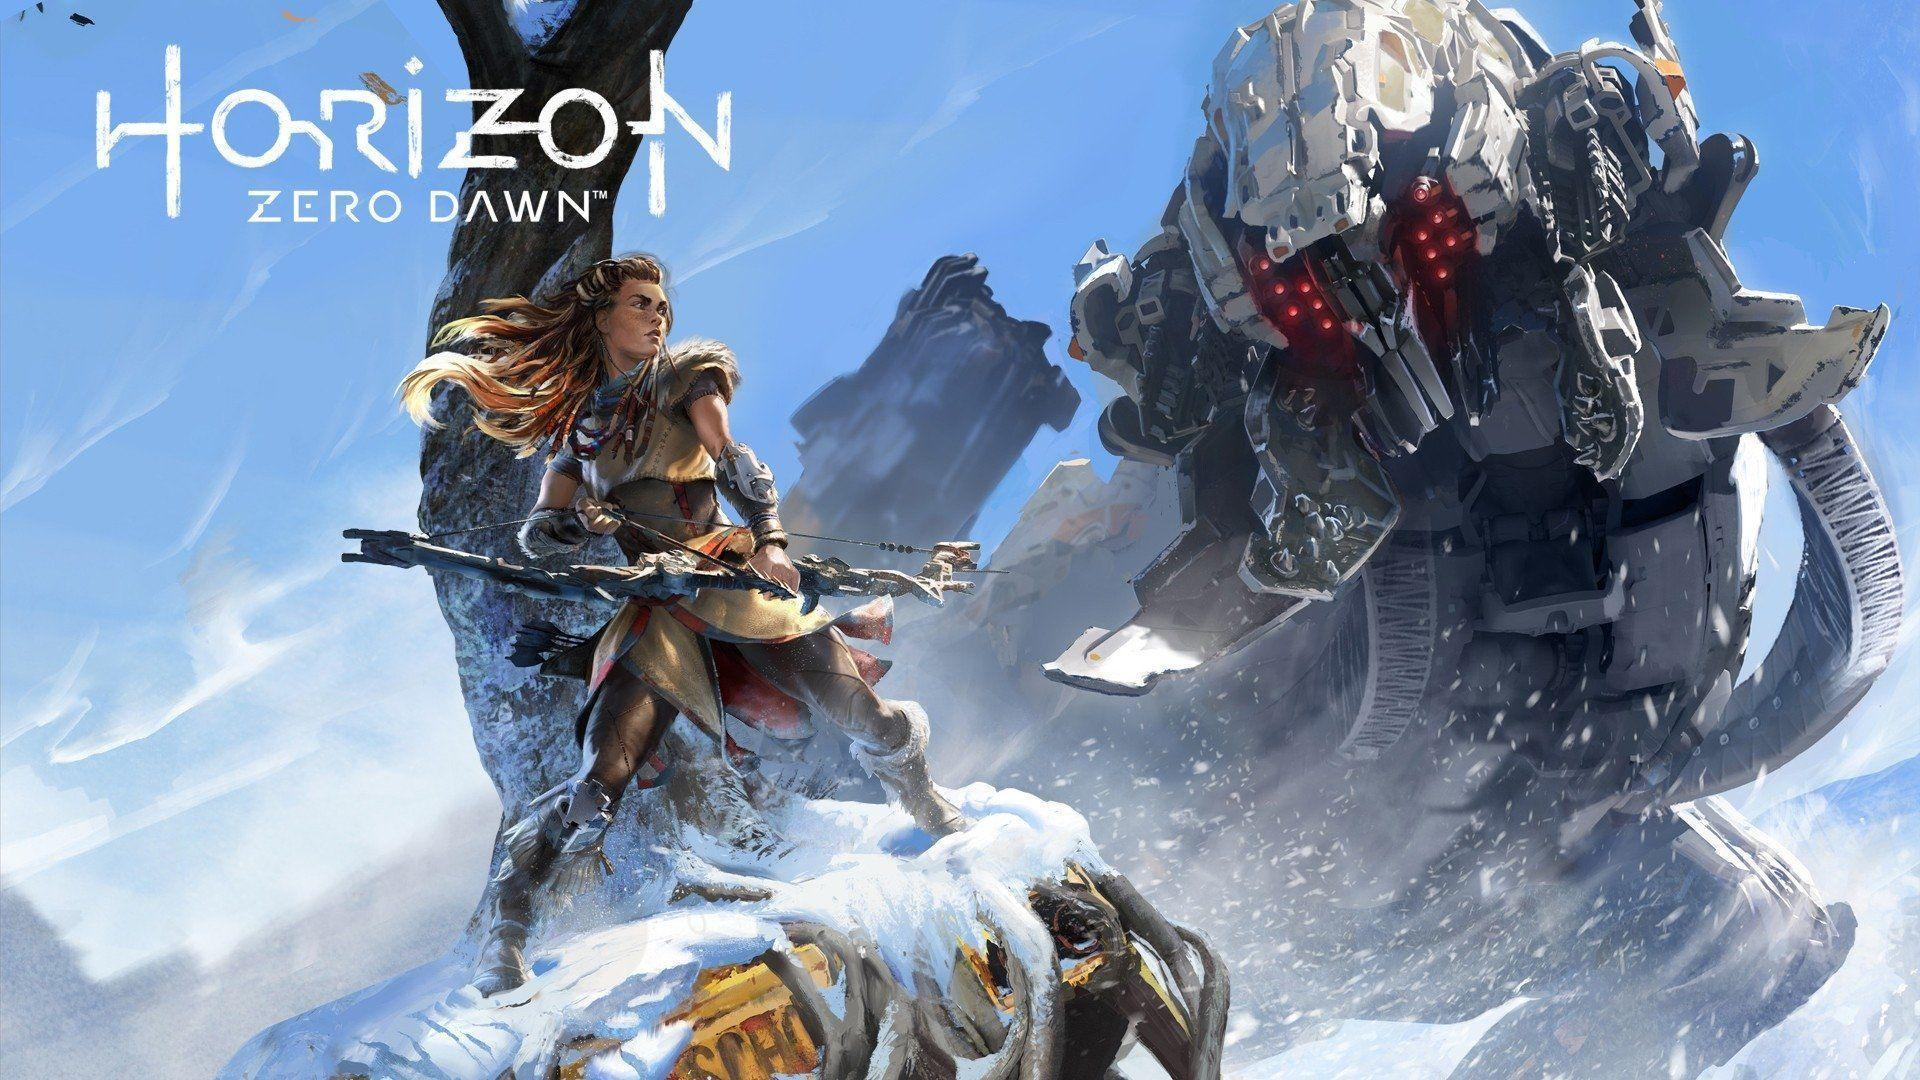 Horizon Zero Dawn Wallpapers   Wallpaper Cave 104 Horizon Zero Dawn HD Wallpapers   Backgrounds   Wallpaper Abyss